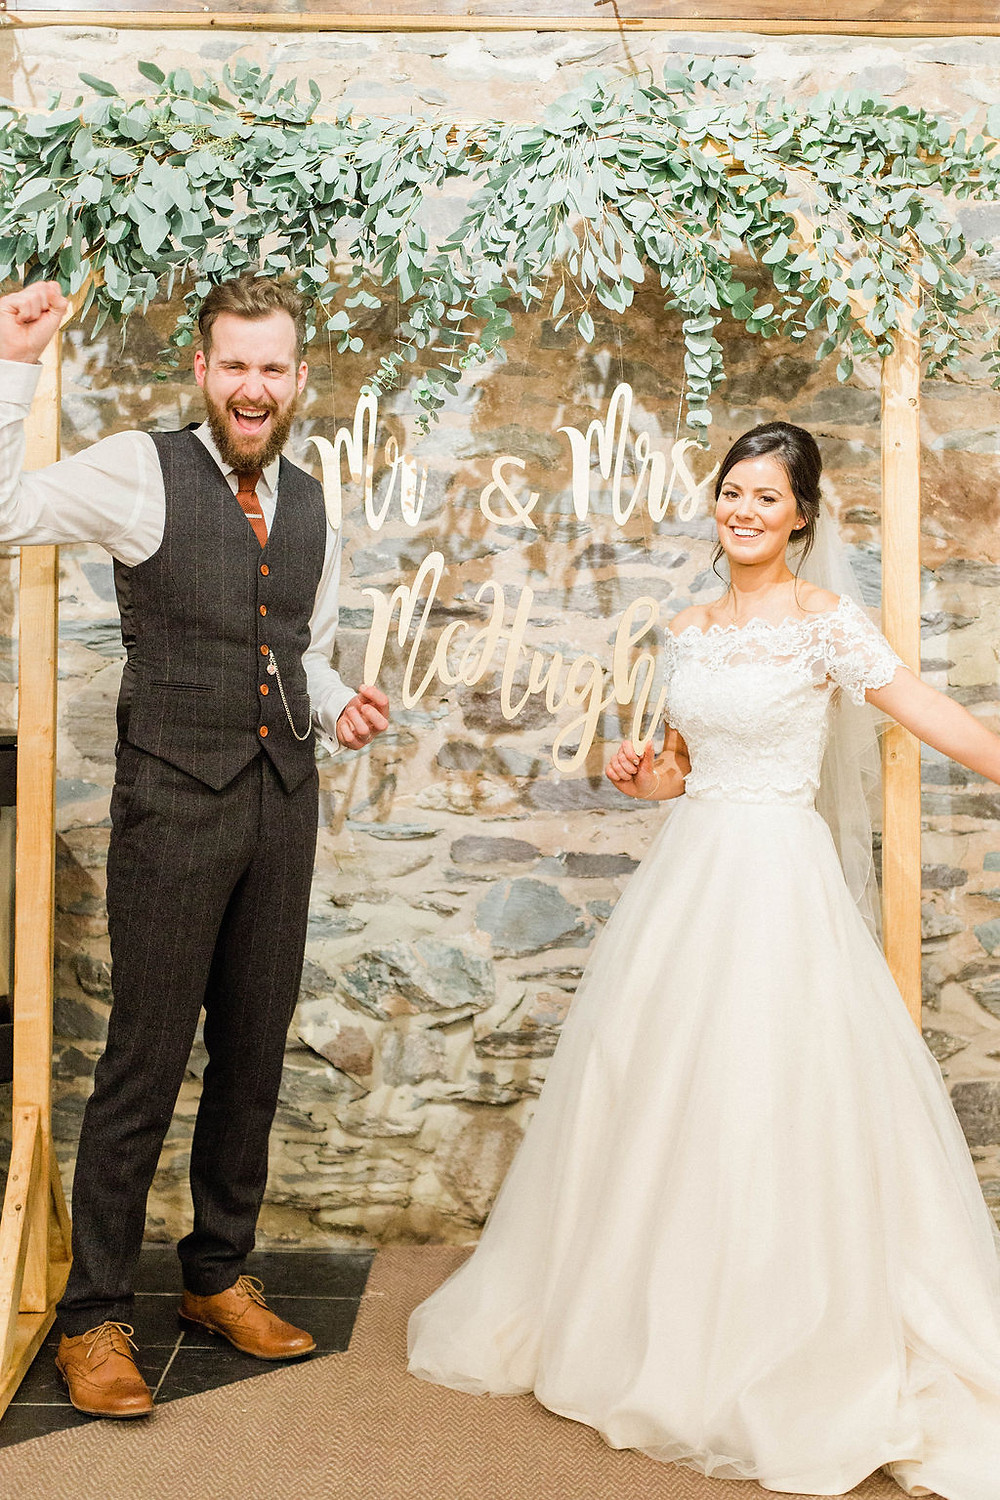 wedding photo booth backdrop with greenery and signage